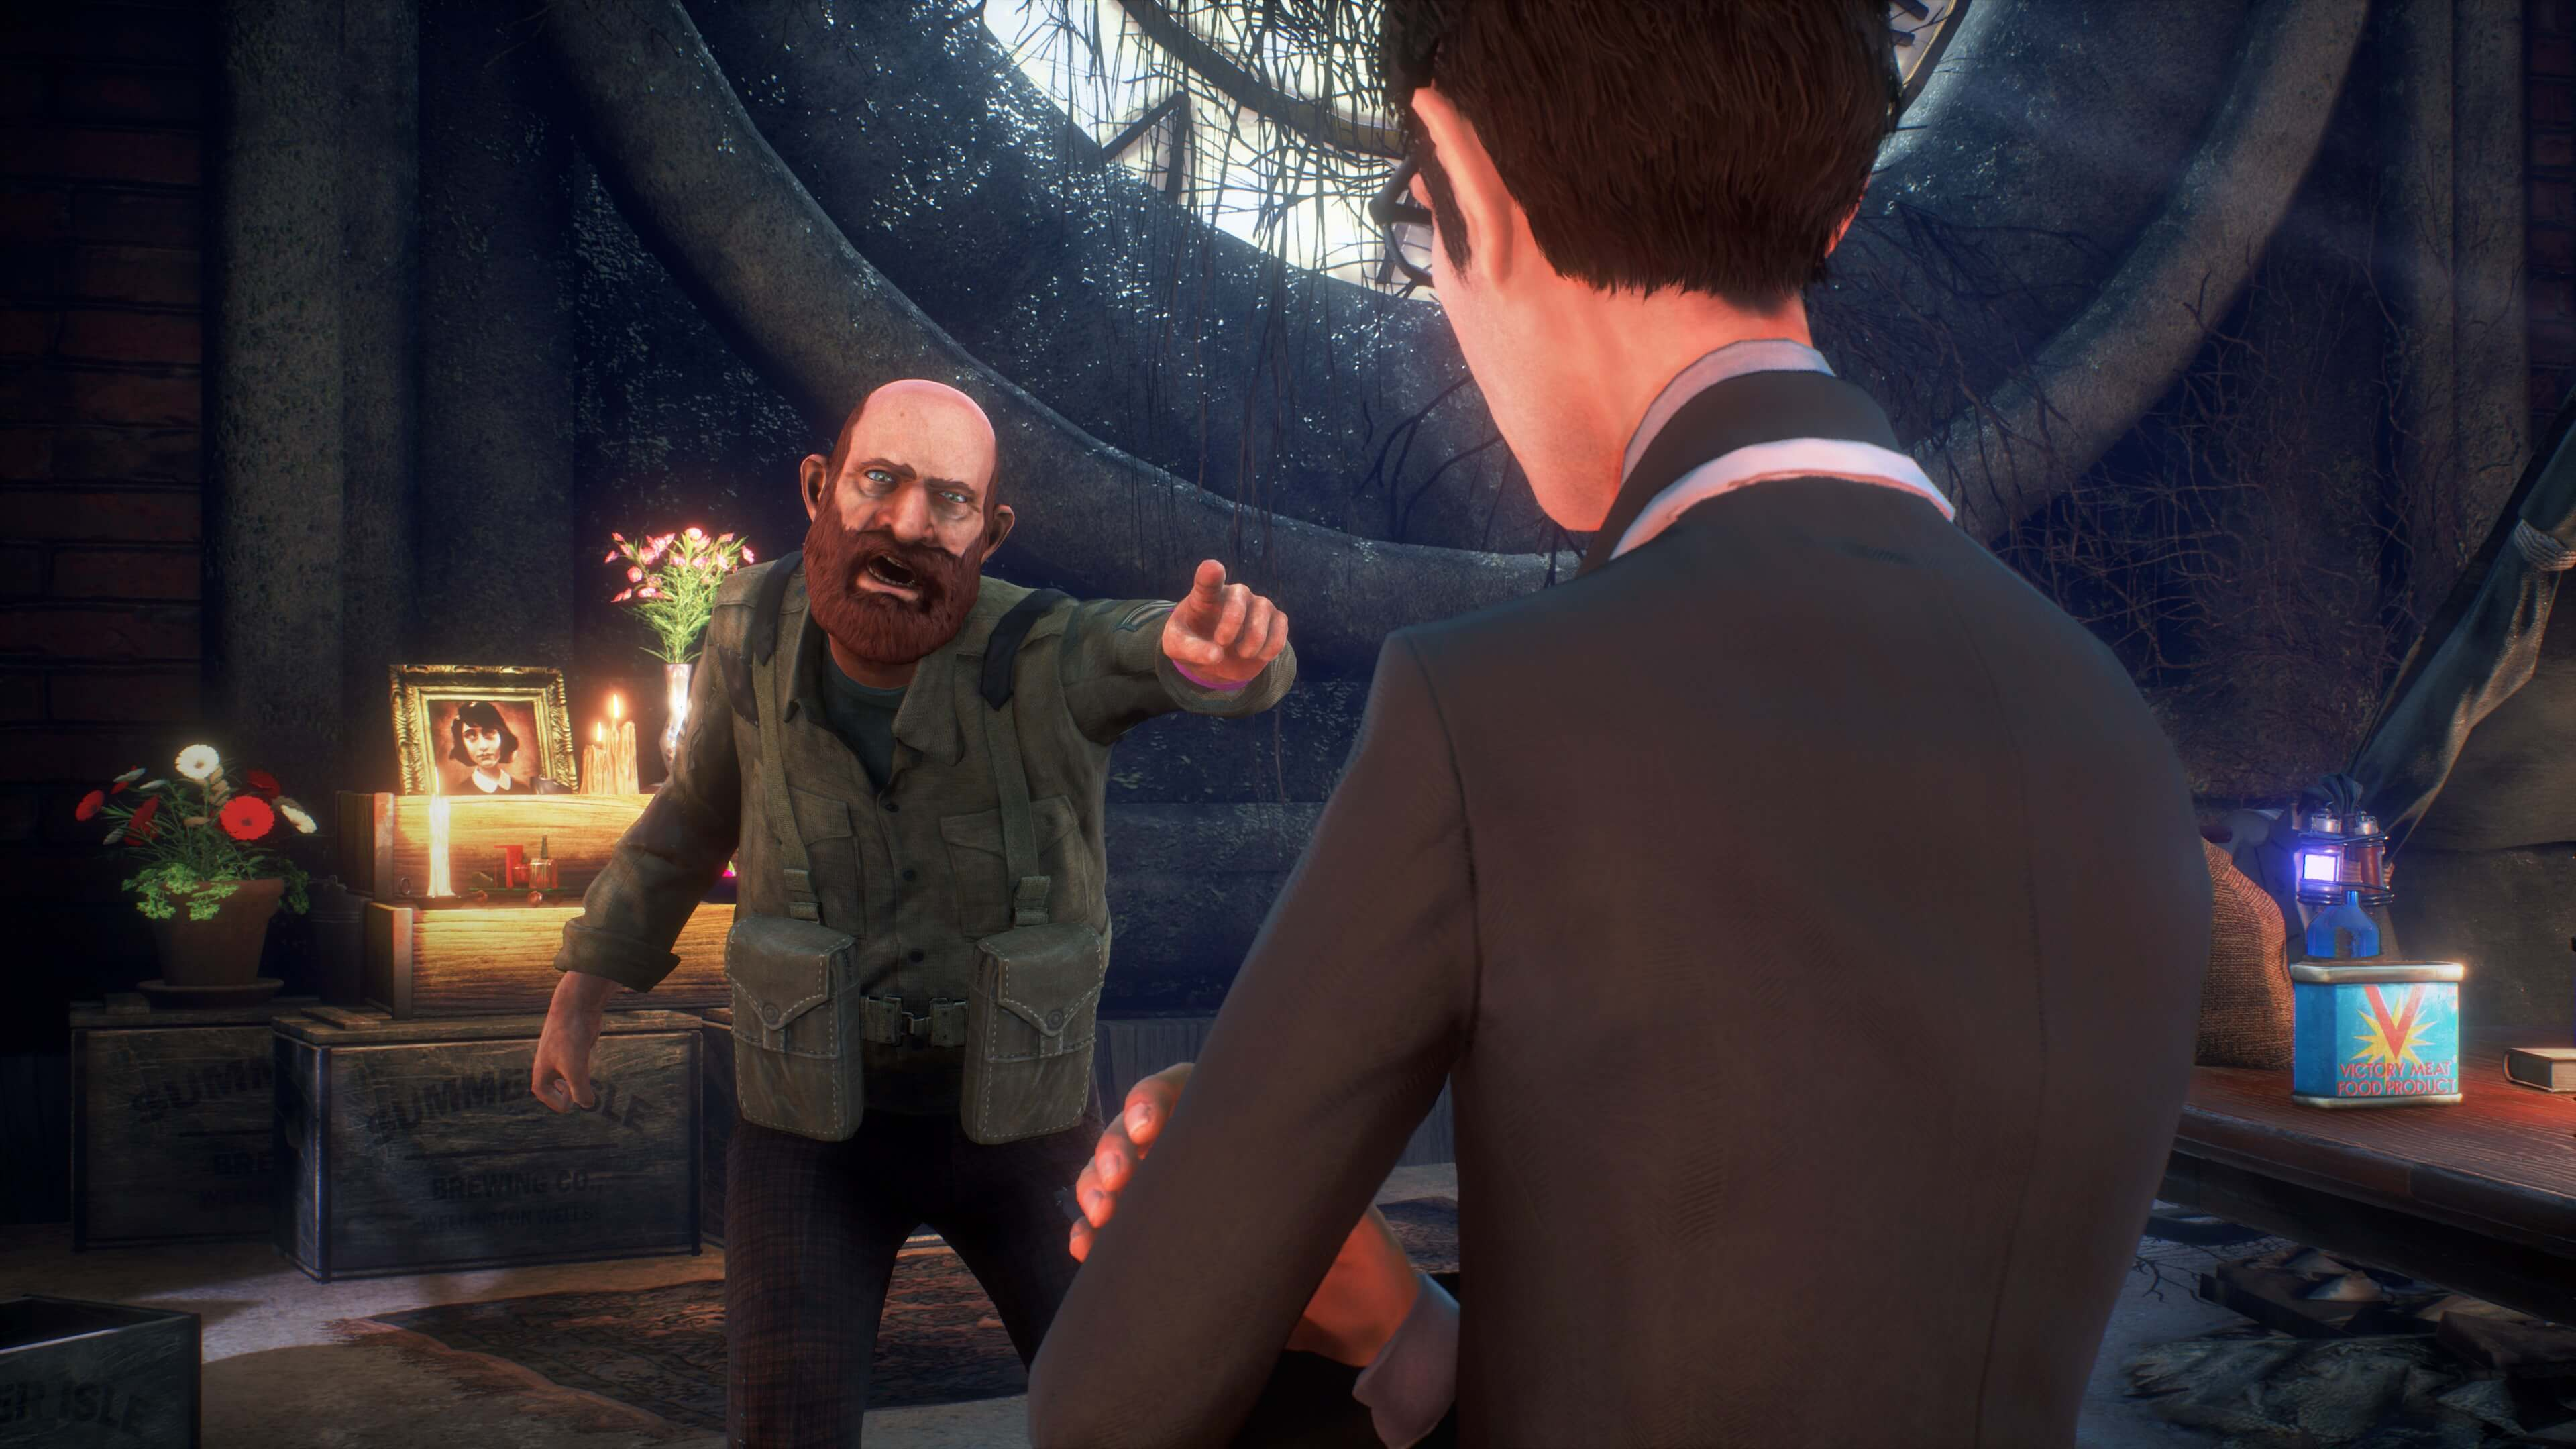 We Happy Few review - Characters